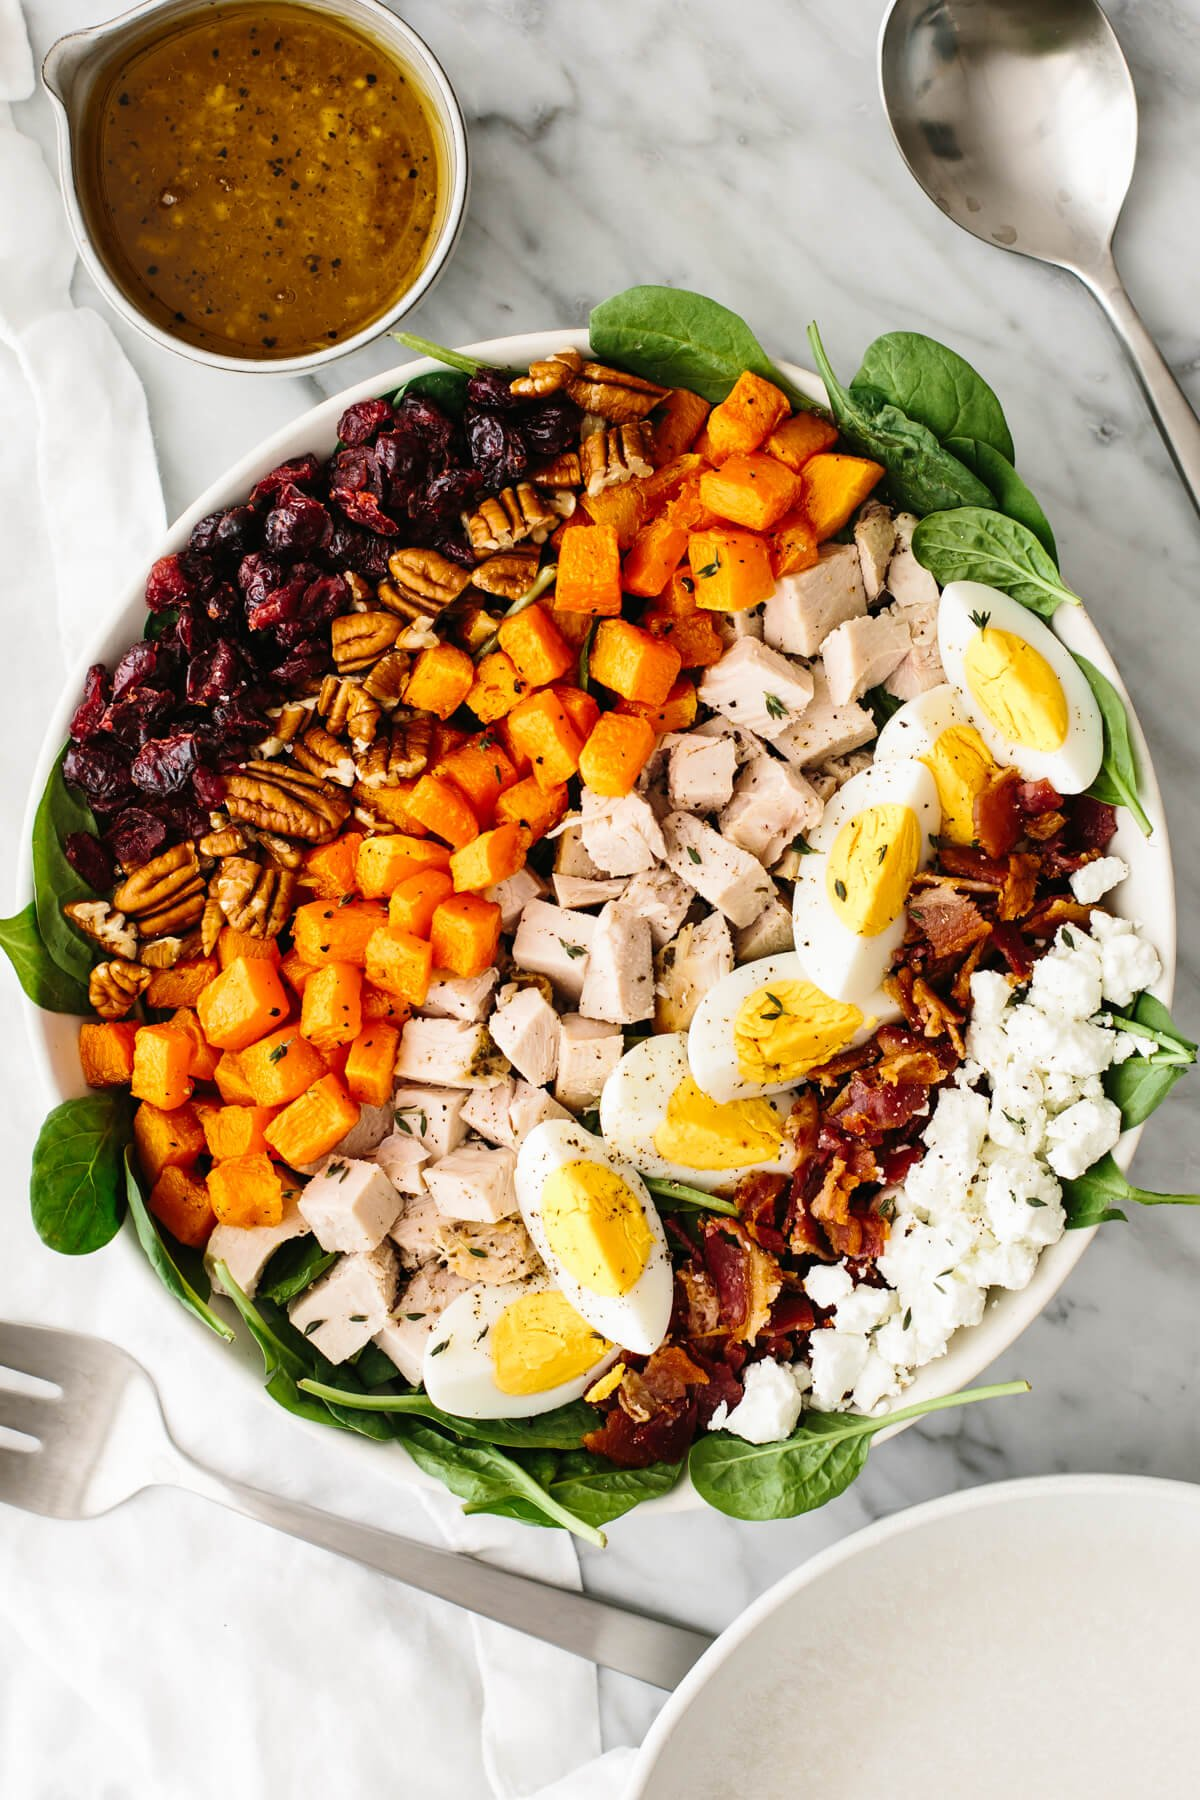 Turkey cobb salad in a large bowl on a table next to a spoon.